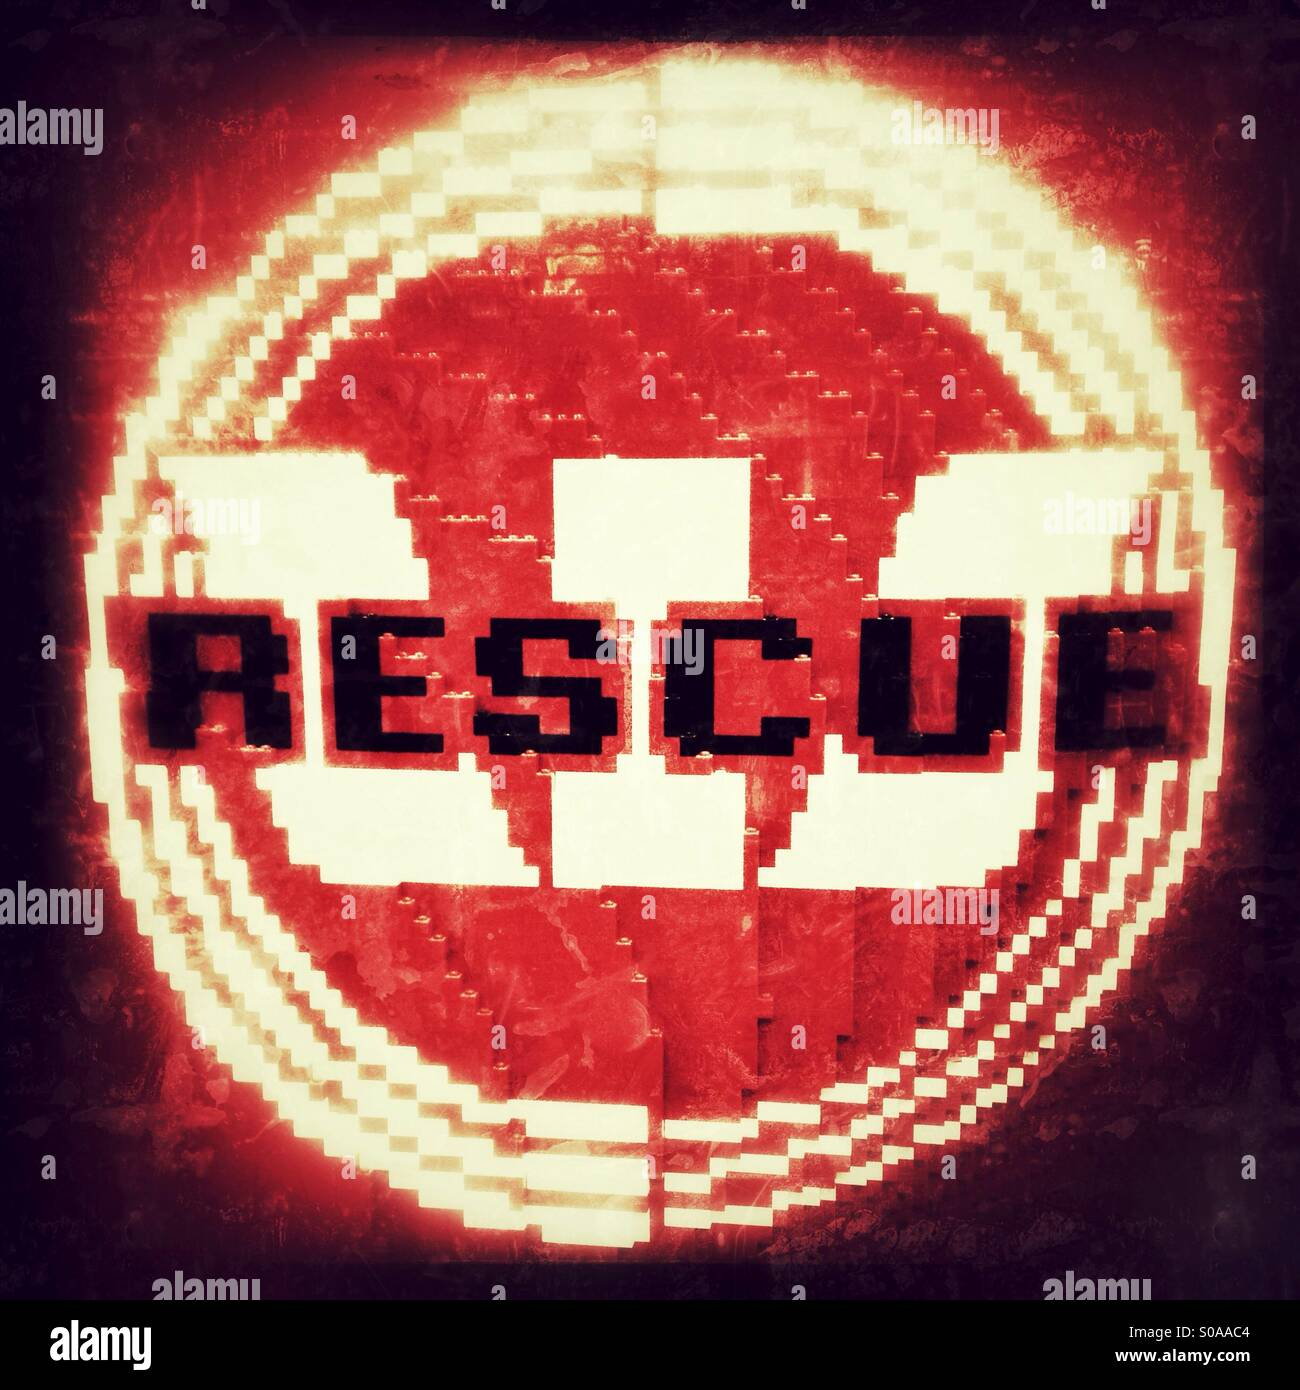 Rescue writings against a Westpac logo made of Lego - Stock Image